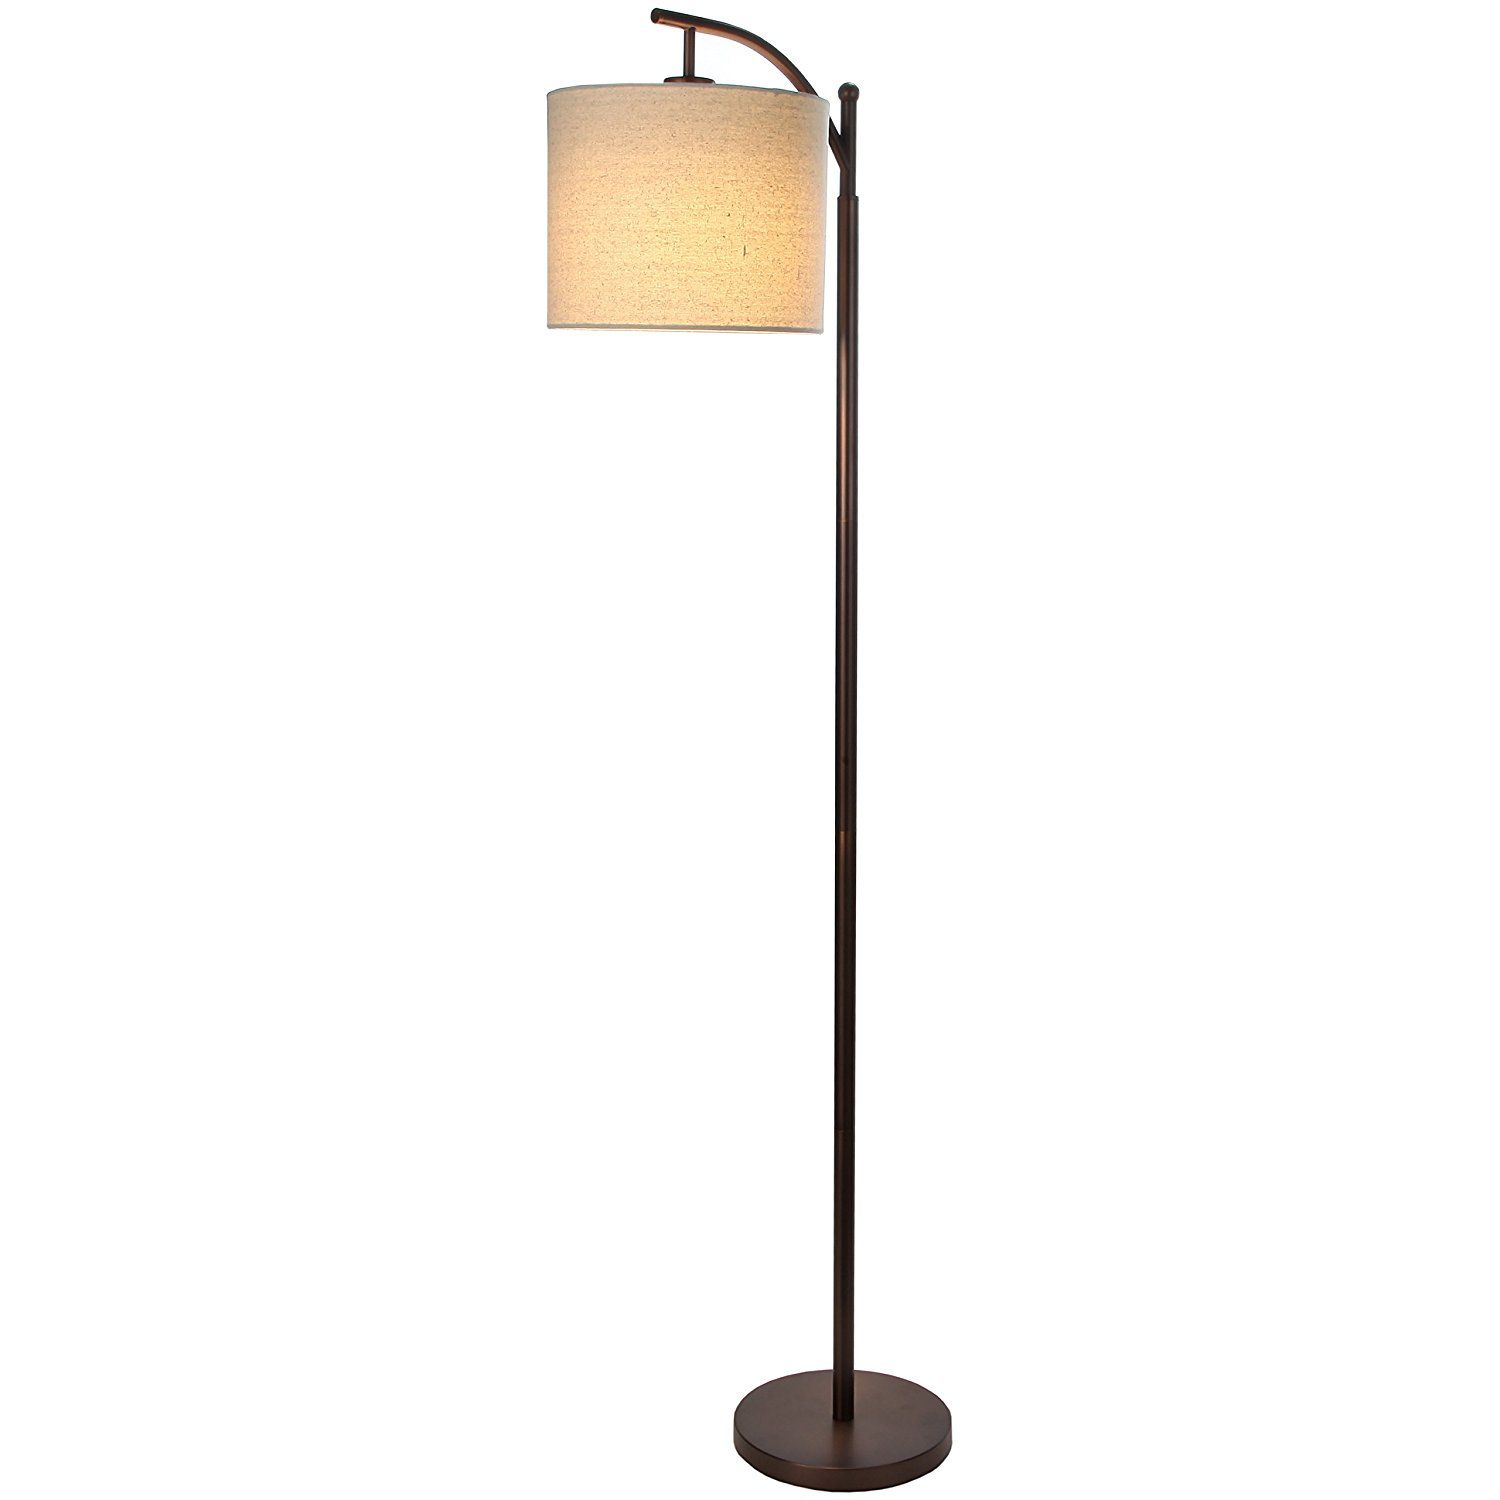 Top 10 Best Led Floor Lamps